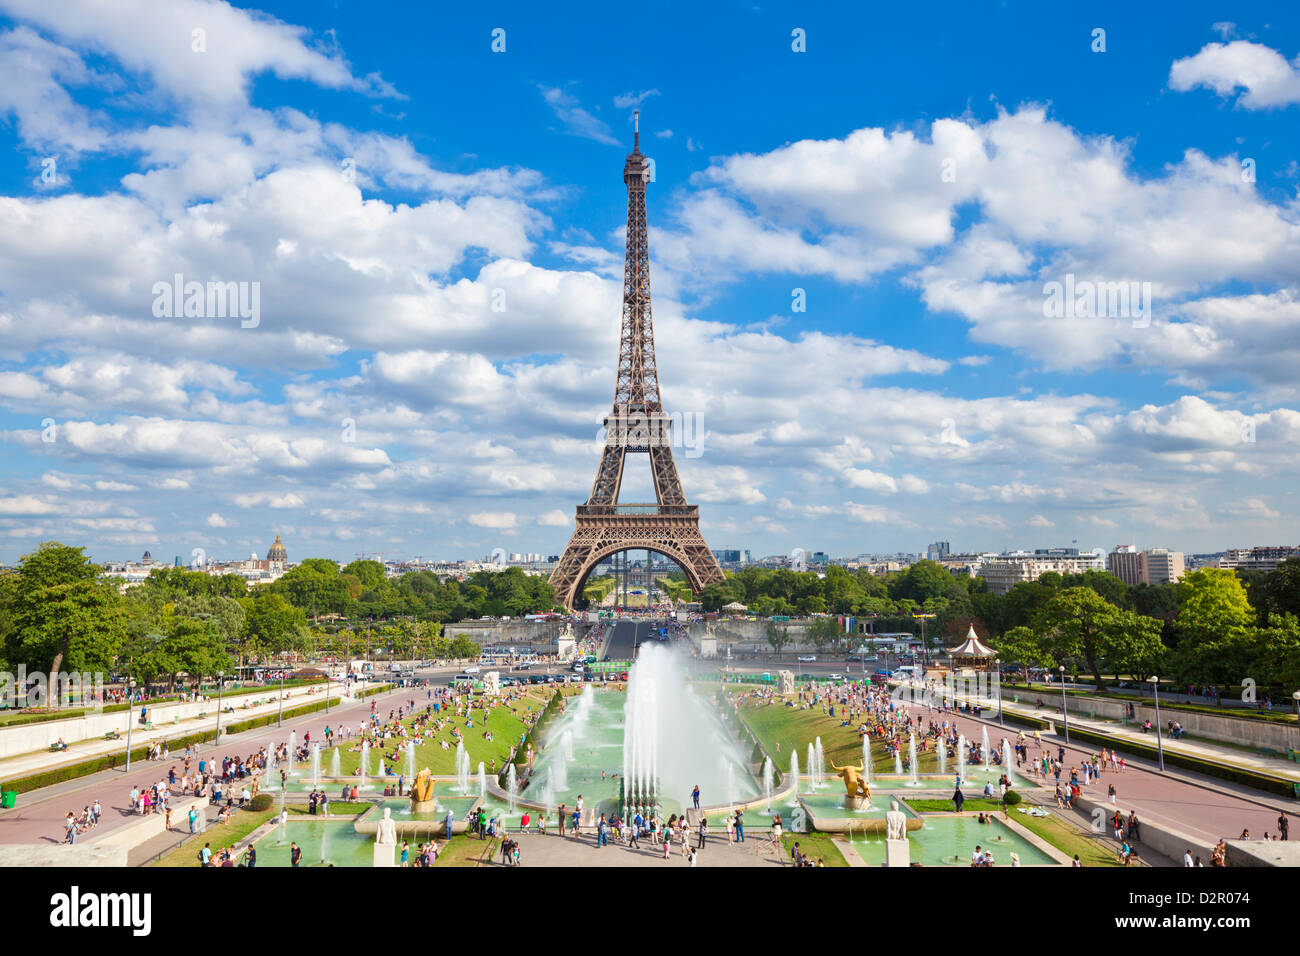 Photo Stock Paris Eiffel Tower And The Trocadero Fountains Paris France Europe